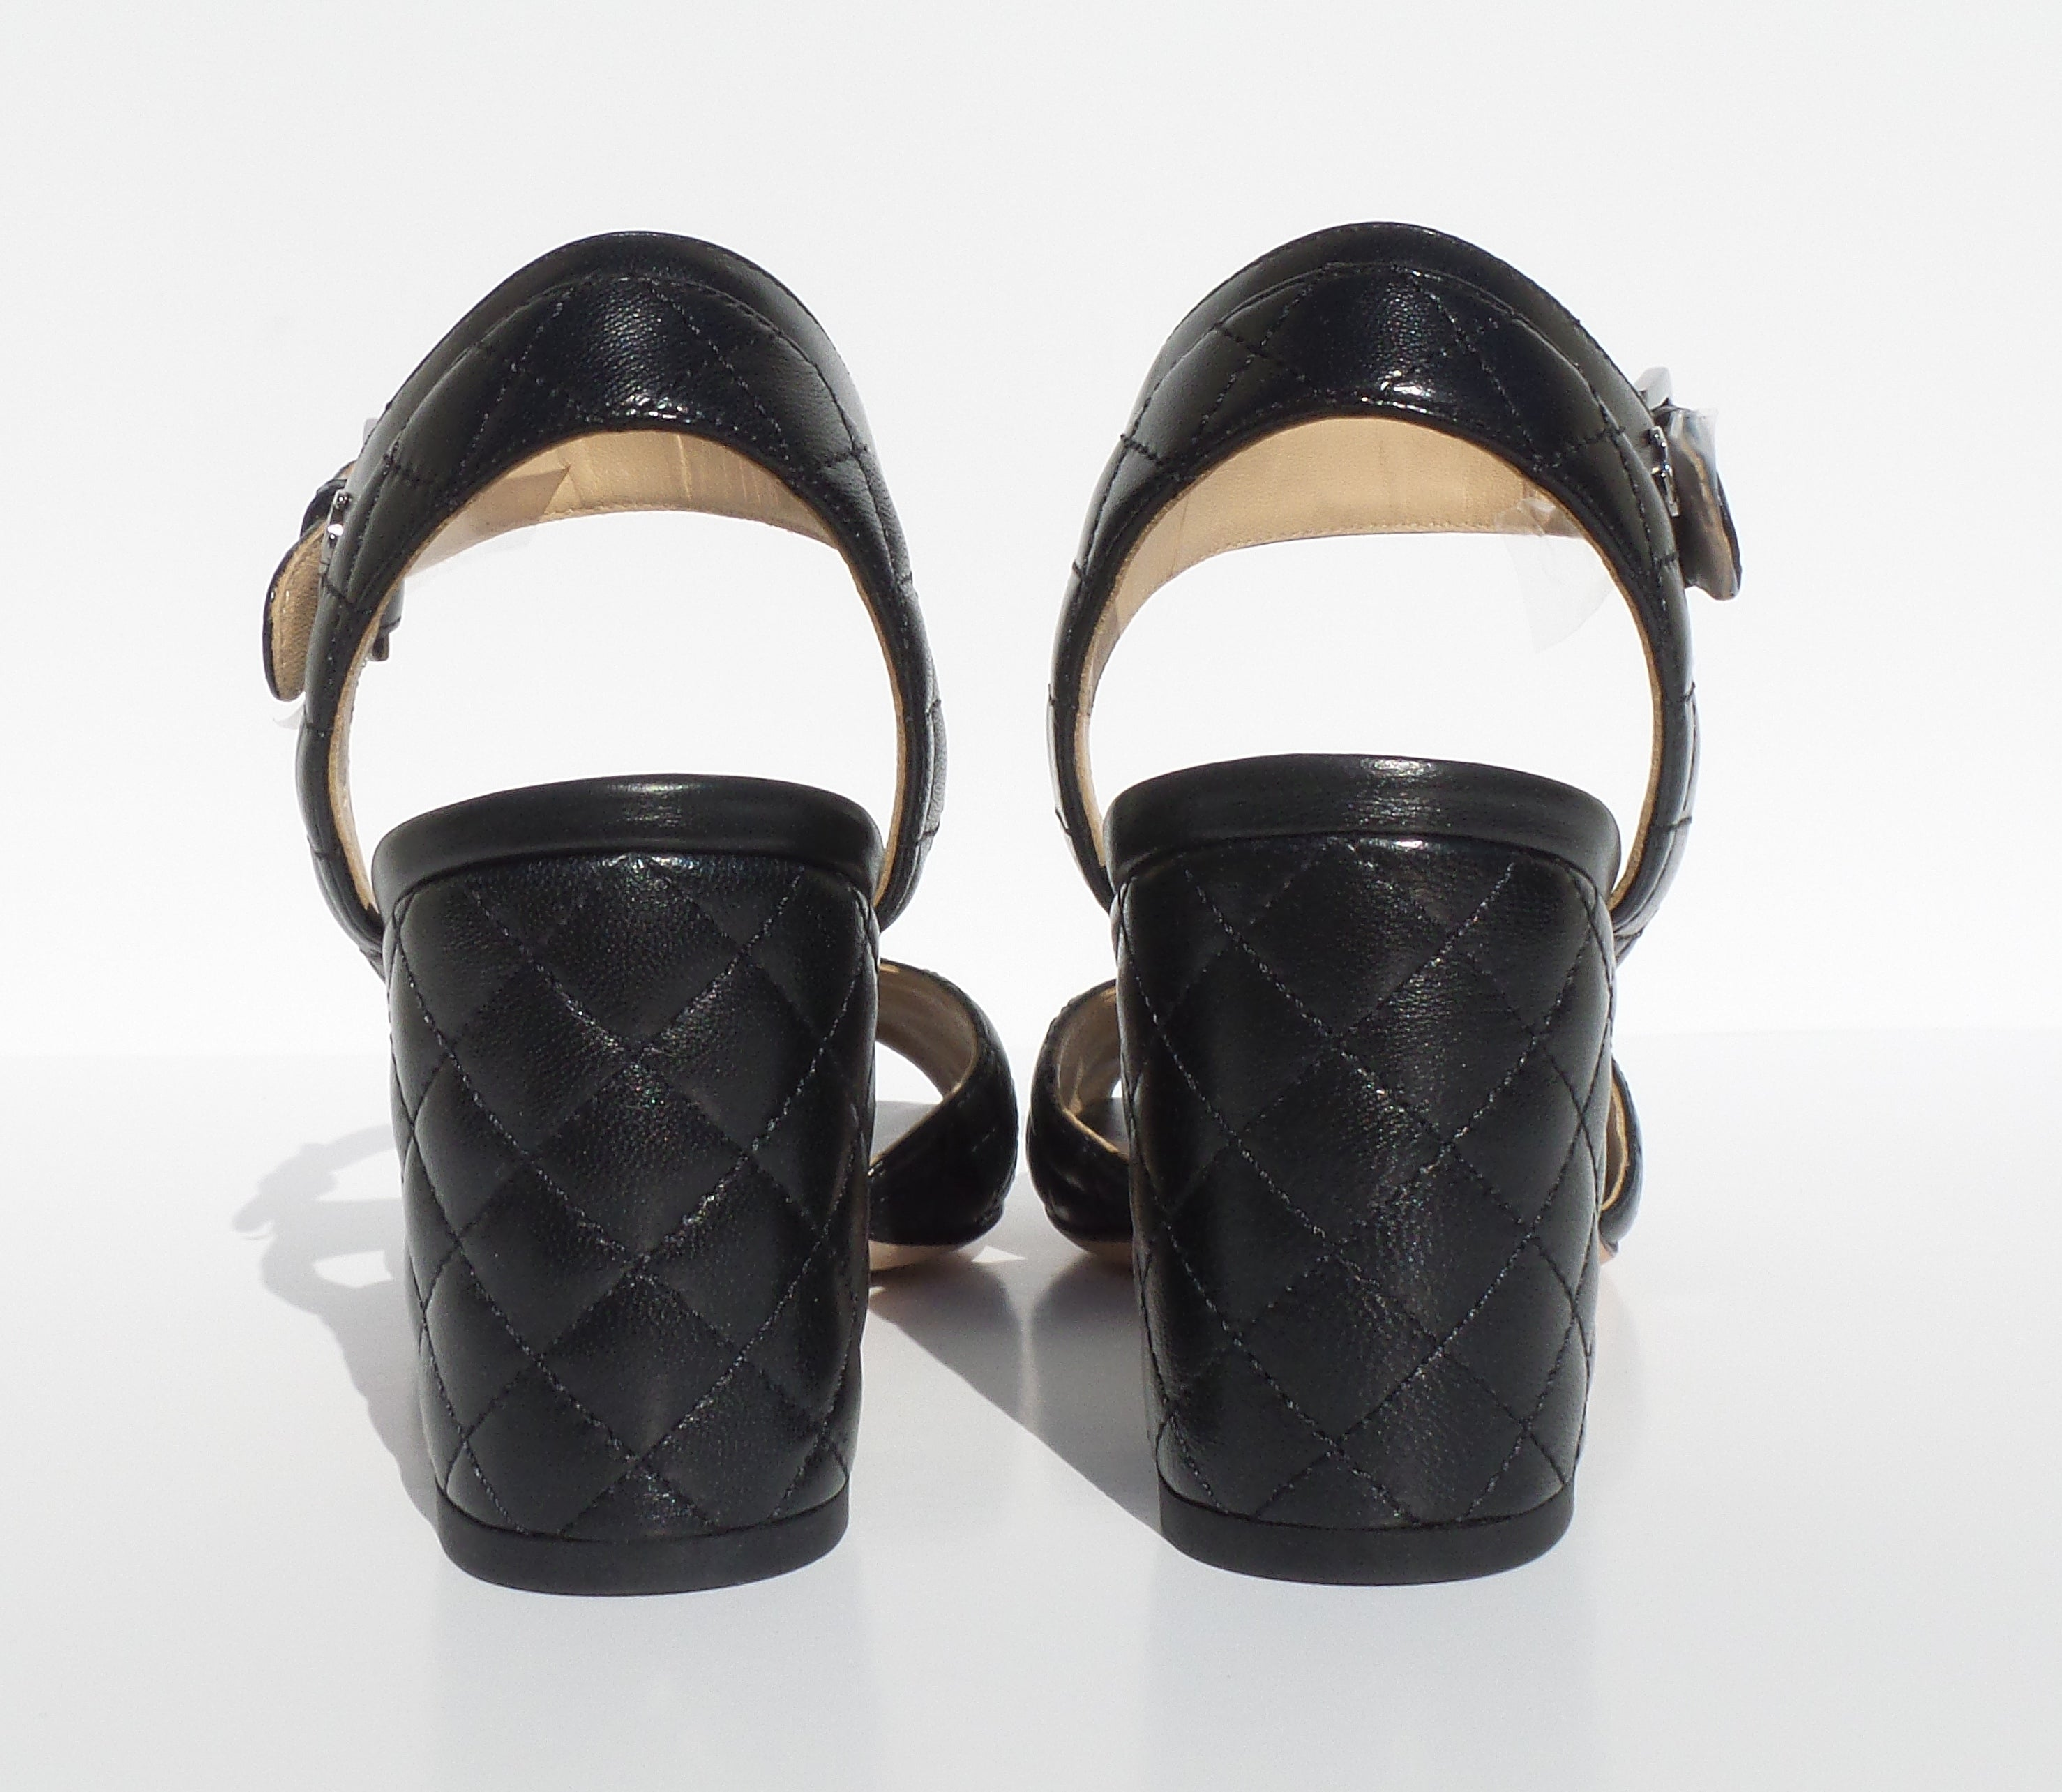 'Sold' CHANEL 16P Black Quilted Leather Silver CC Ankle Strap Block Heel Sandals 36 NOB